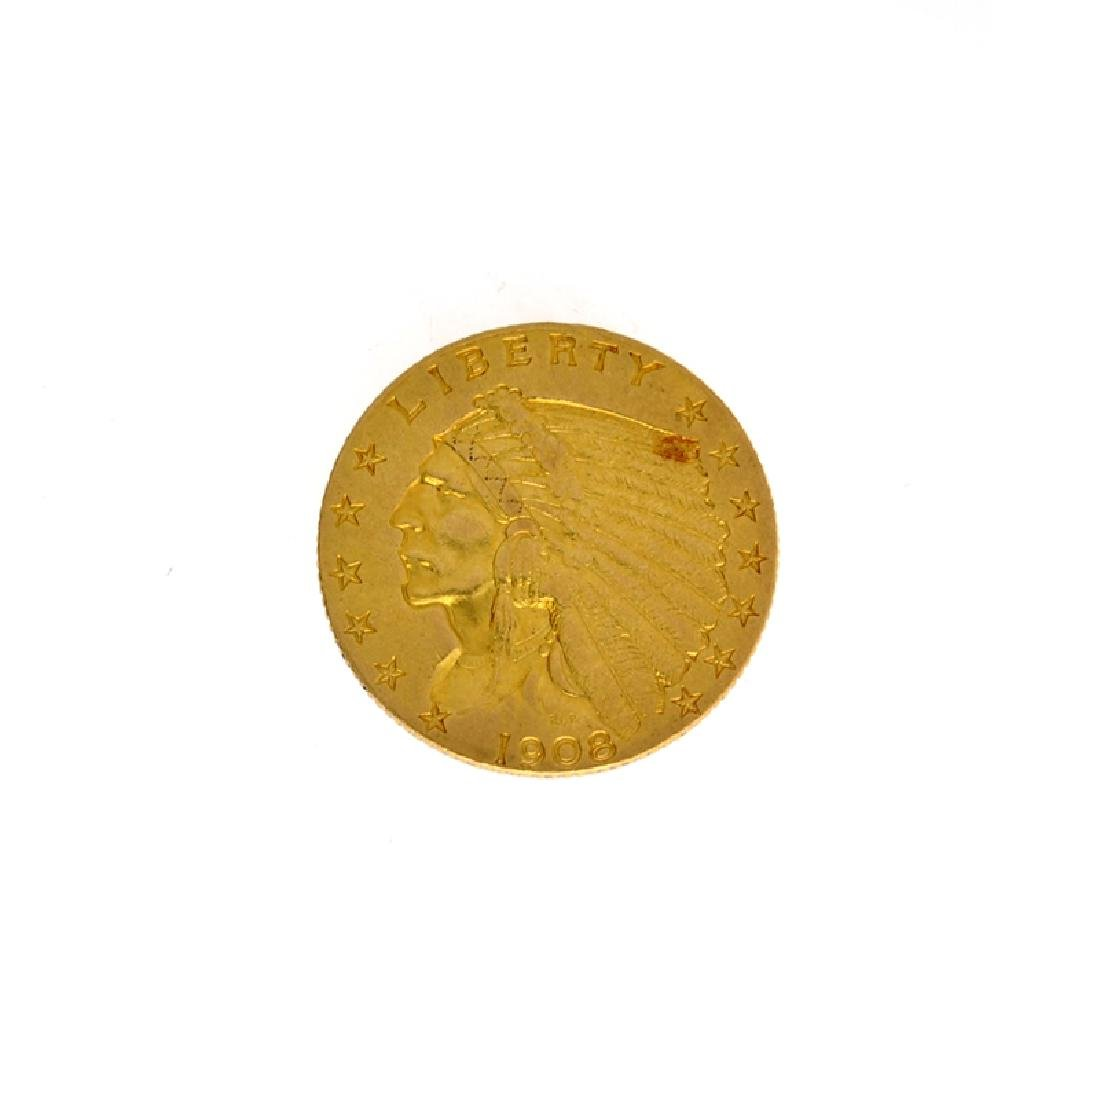 *1908 $2.50 U.S. Indian Head Gold Coin (DF)